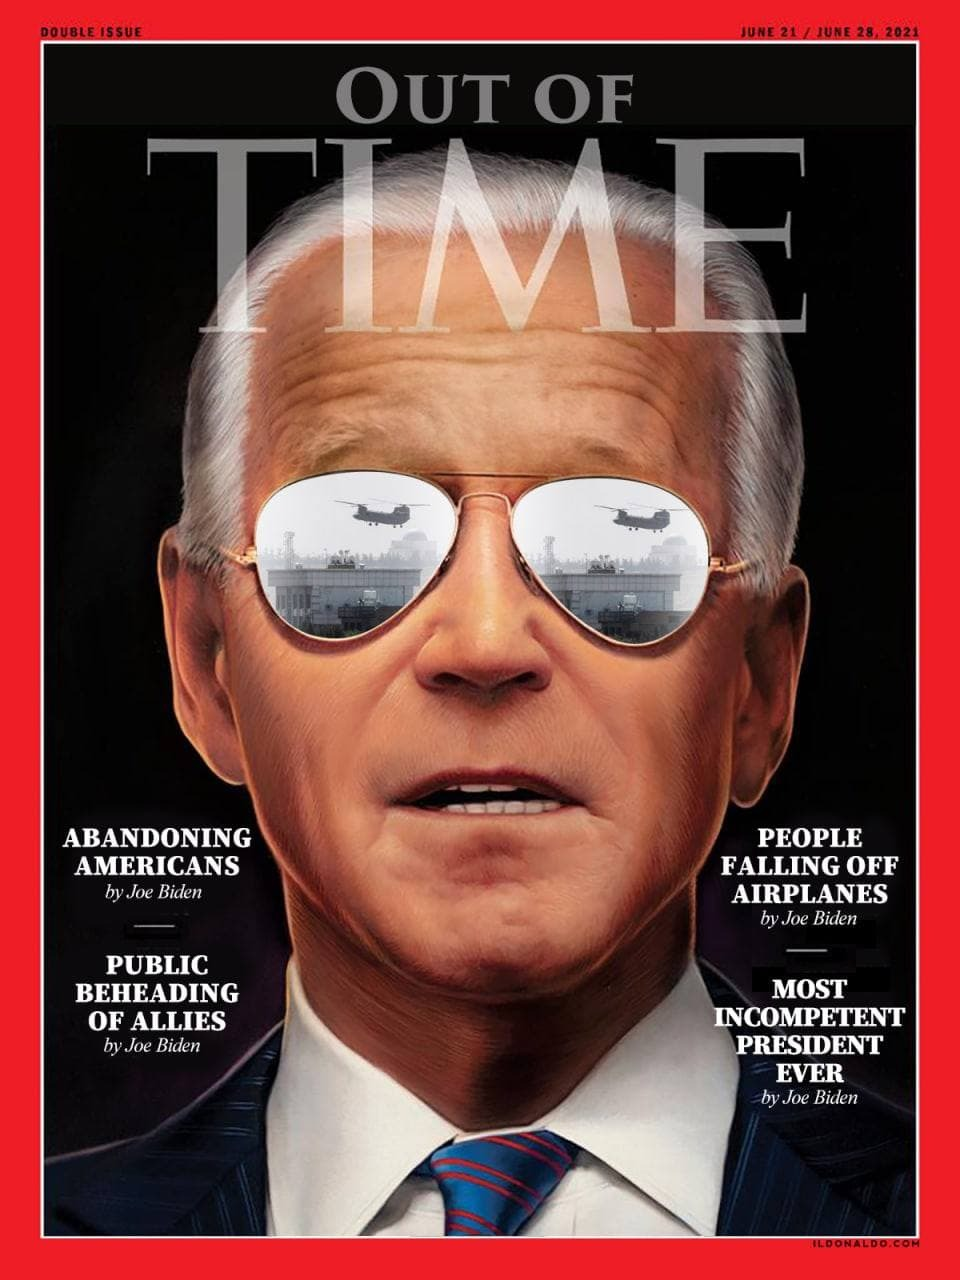 Majority now disapproves of Biden's handling of economy: Poll